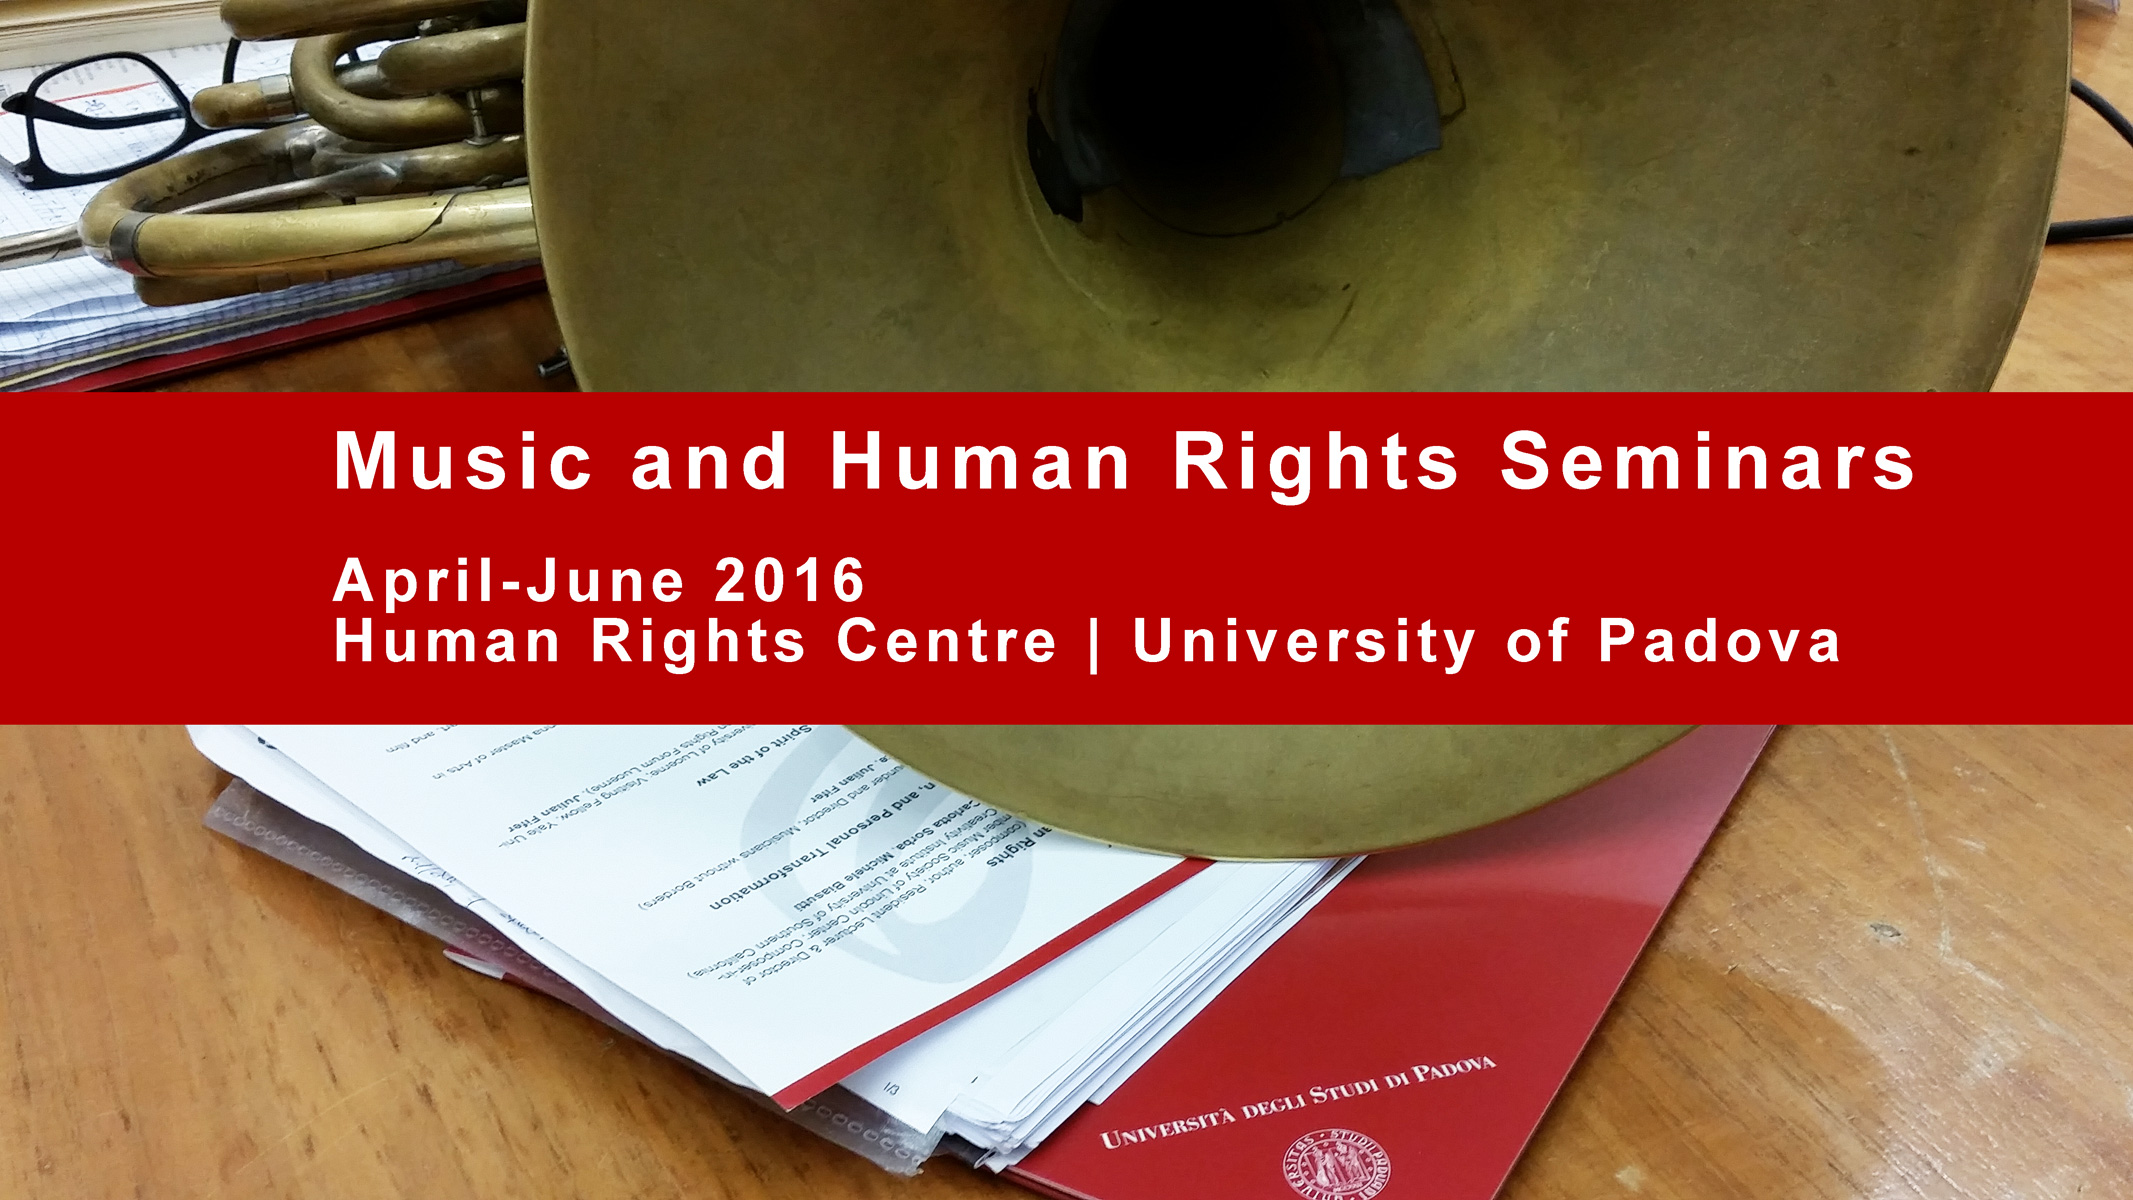 Music and Human Rights Seminars, April-June 2016, Human Rights Centre, University of Padova